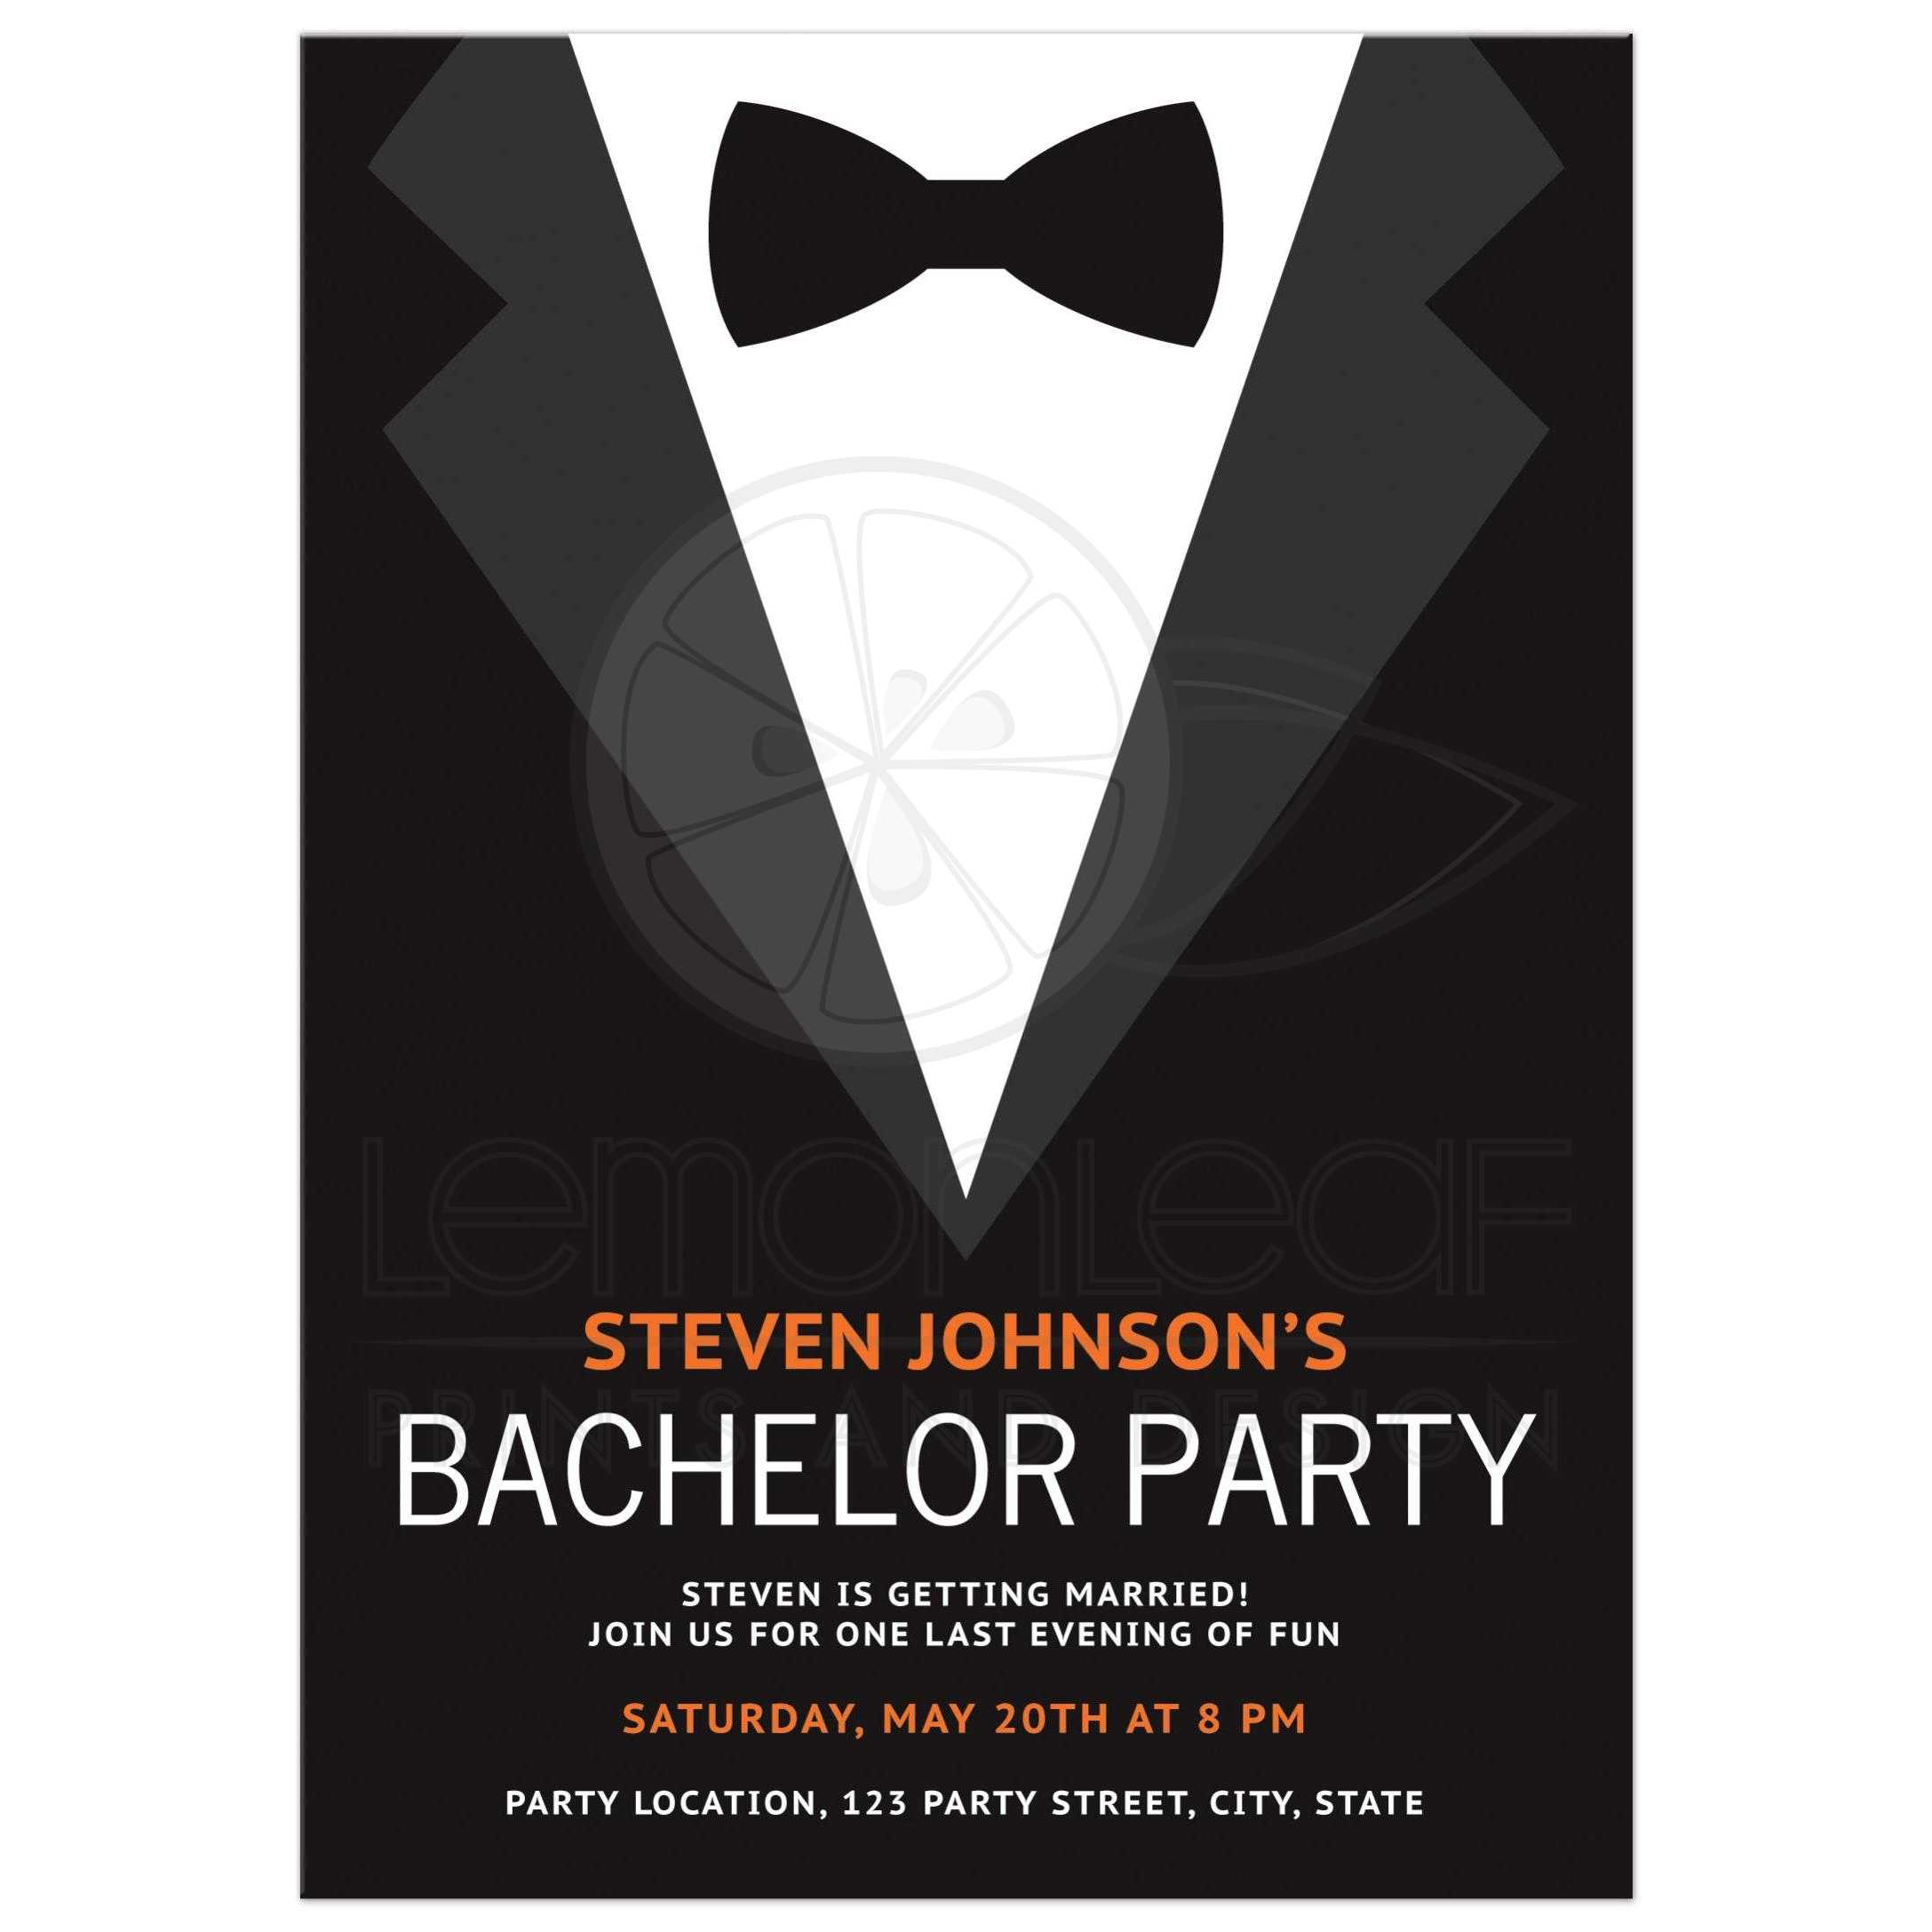 Bachelor Party Invitation With Bow Tie Bold And Modern